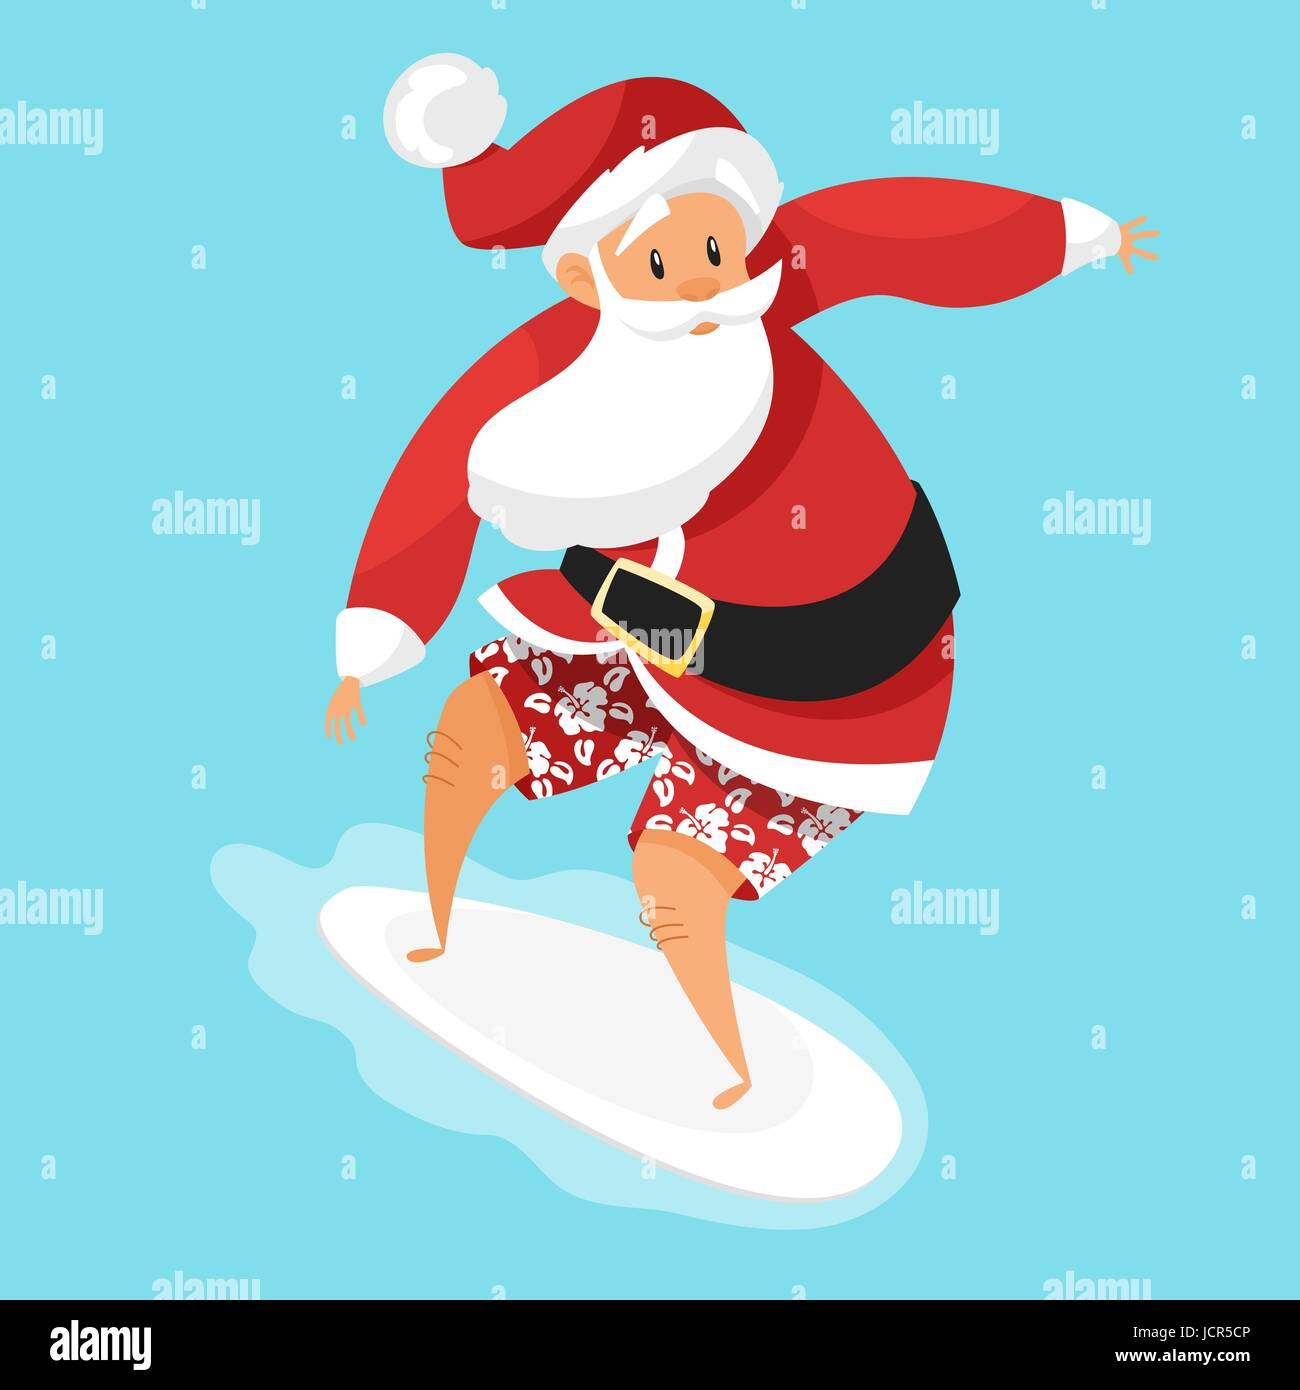 vector cartoon style illustration of santa surfer holiday greeting card template isolated on blue background